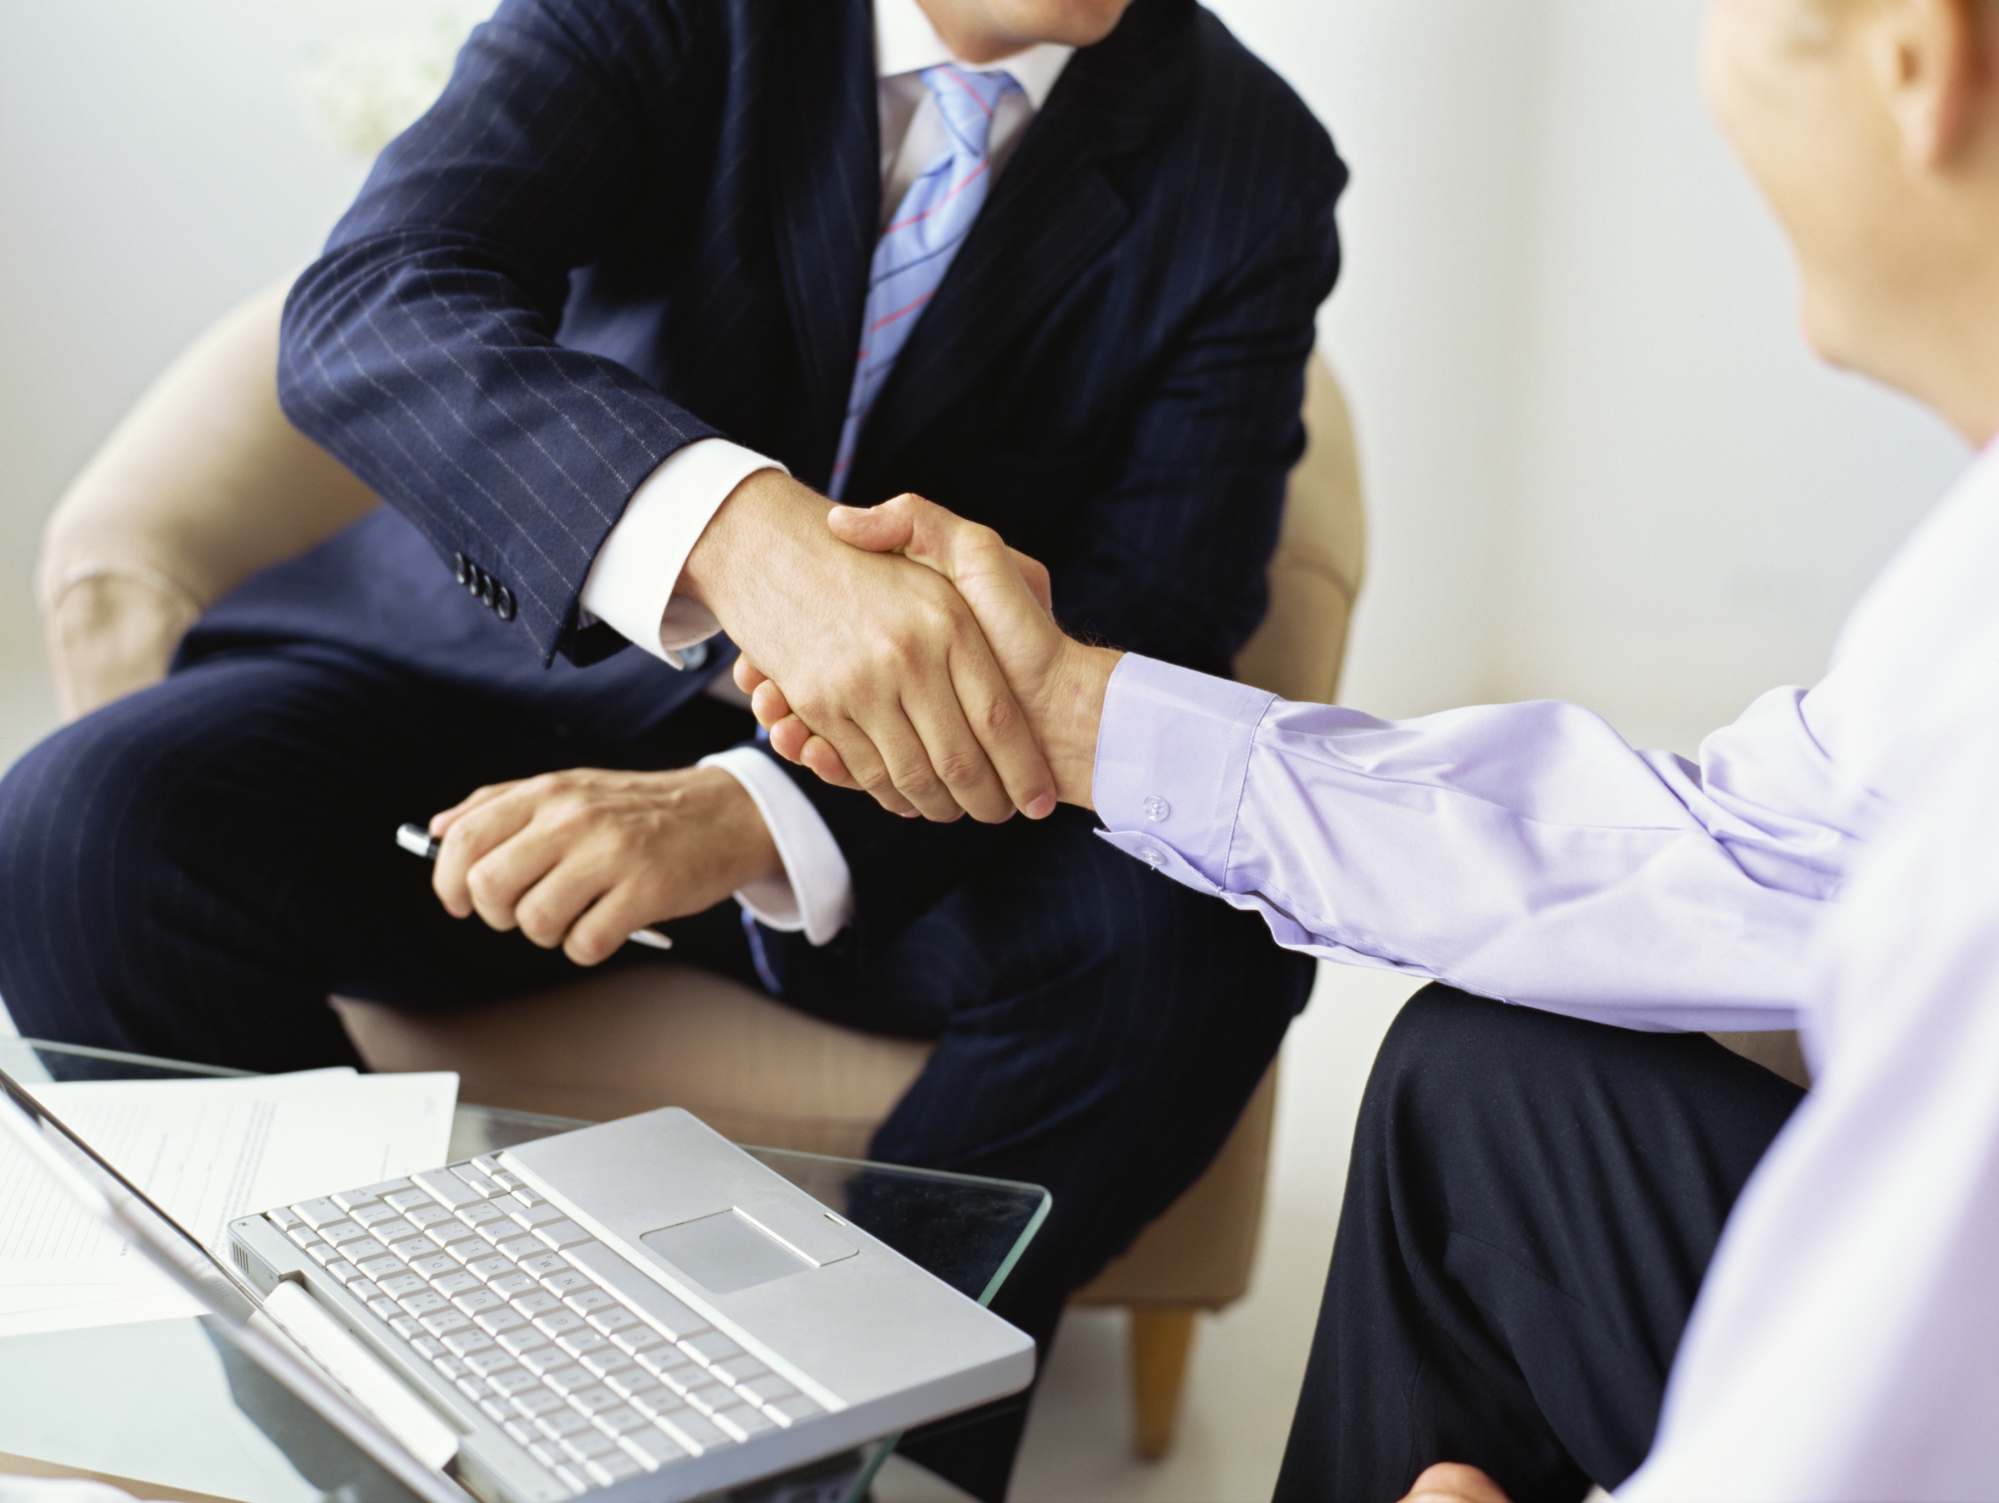 Collateral Loan Bad Credit >> How To Get A Small Business Loan With Bad Credit No Collateral